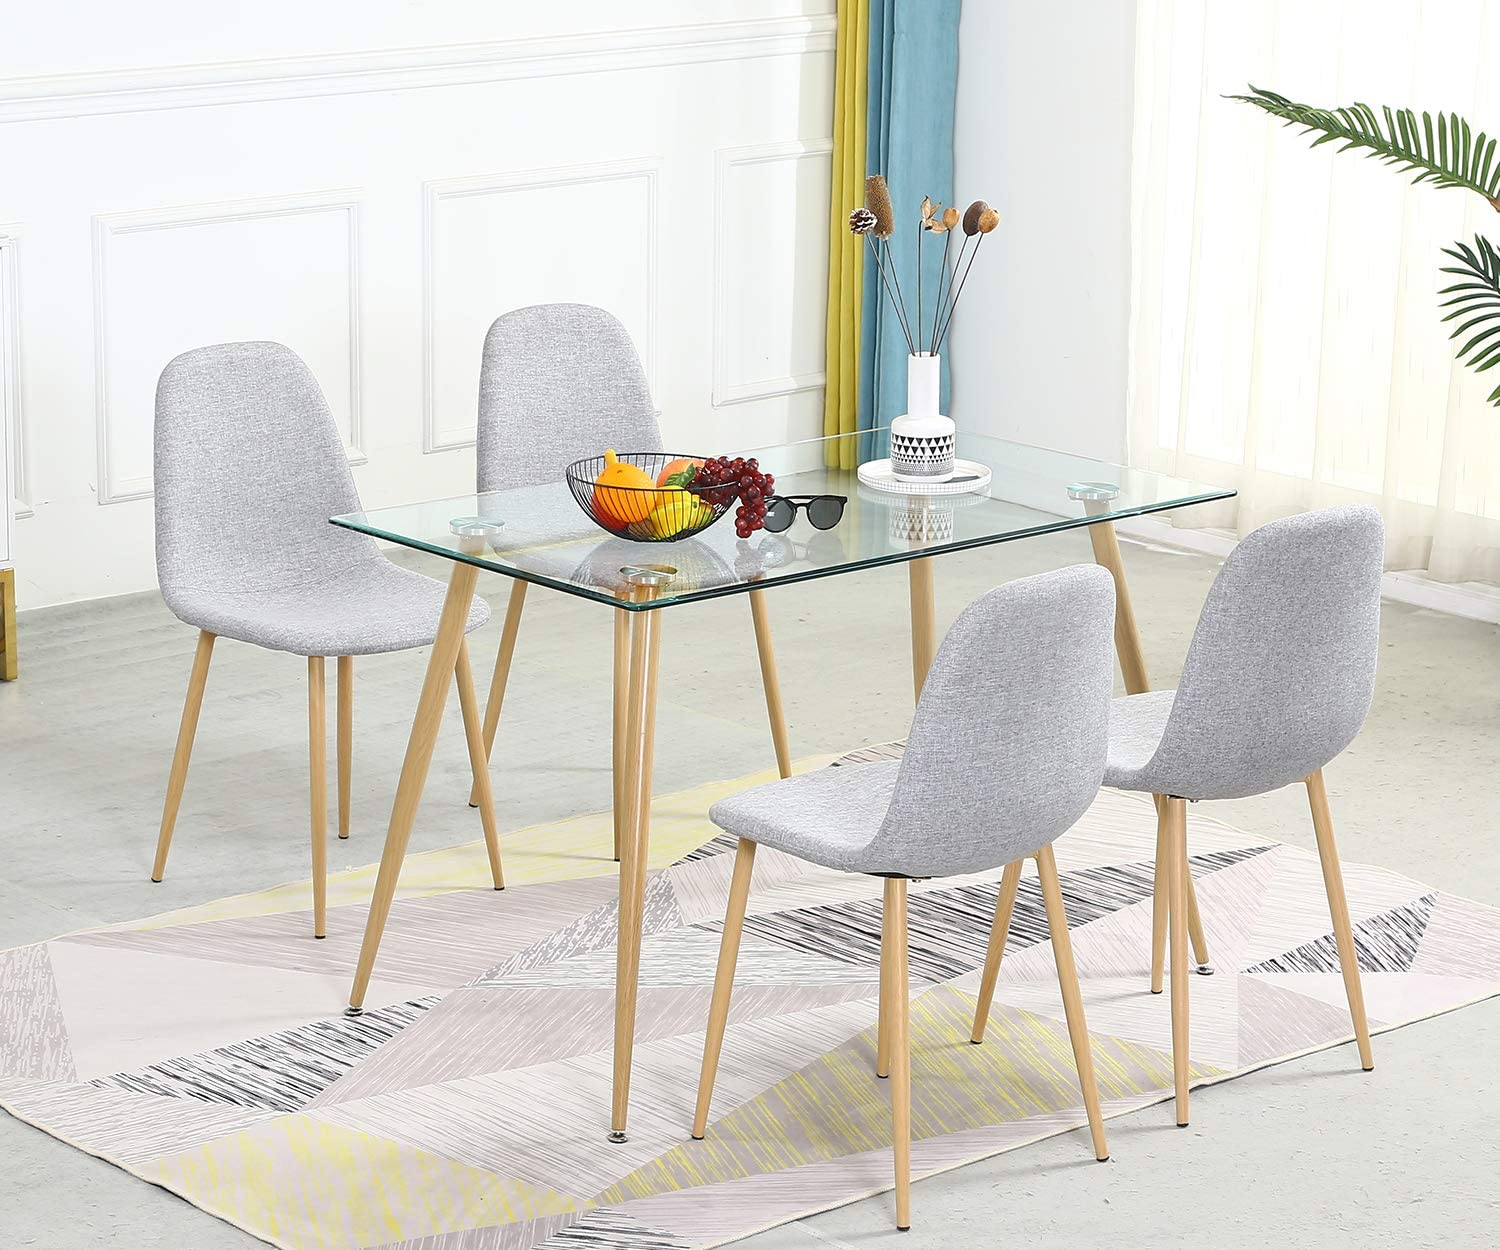 Dining Table Set for 9 Modern 9 Pieces Dining Room Set   Rectangle Tempered  Glass Table and 9 Grey Fabric Dining Chairs   Kitchen Table and Chairs for  ...